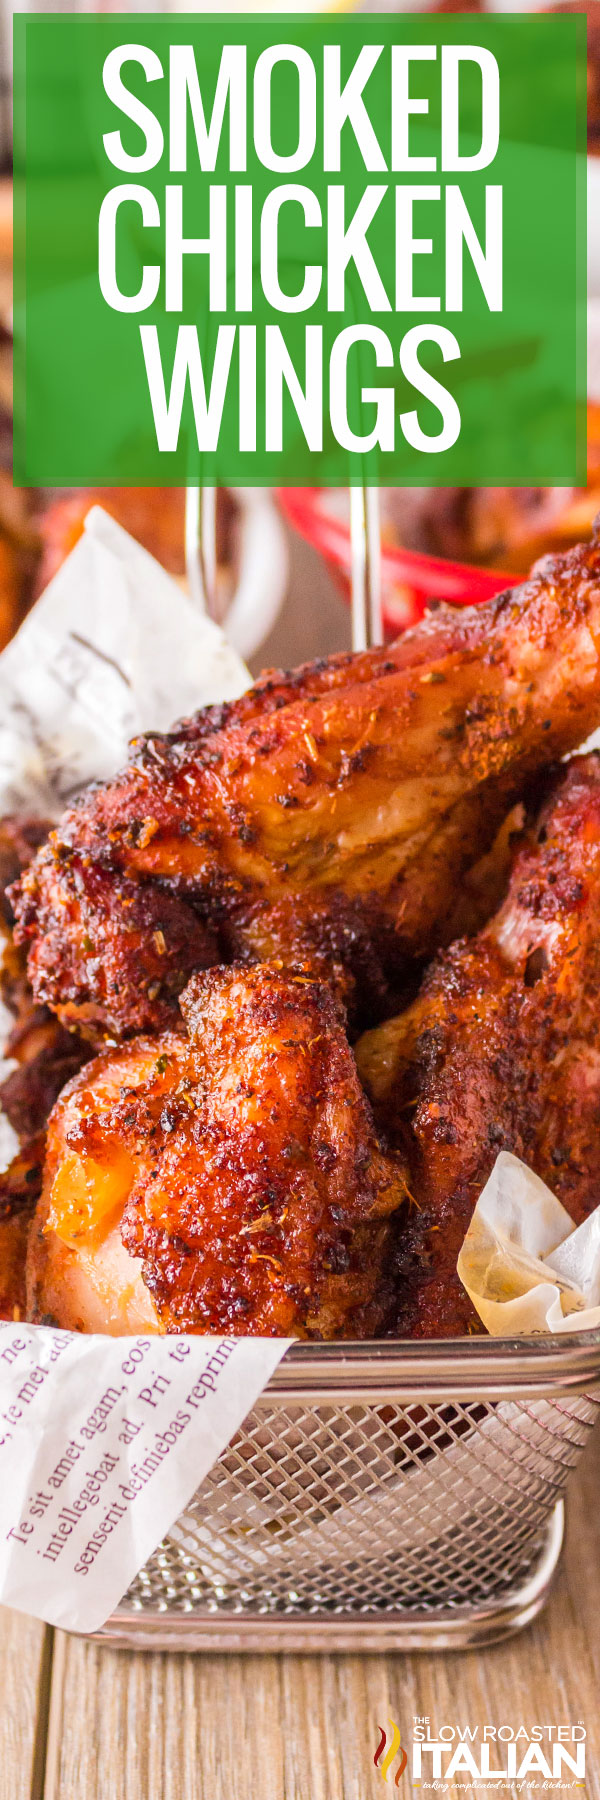 Smoked Chicken Wings in a basket